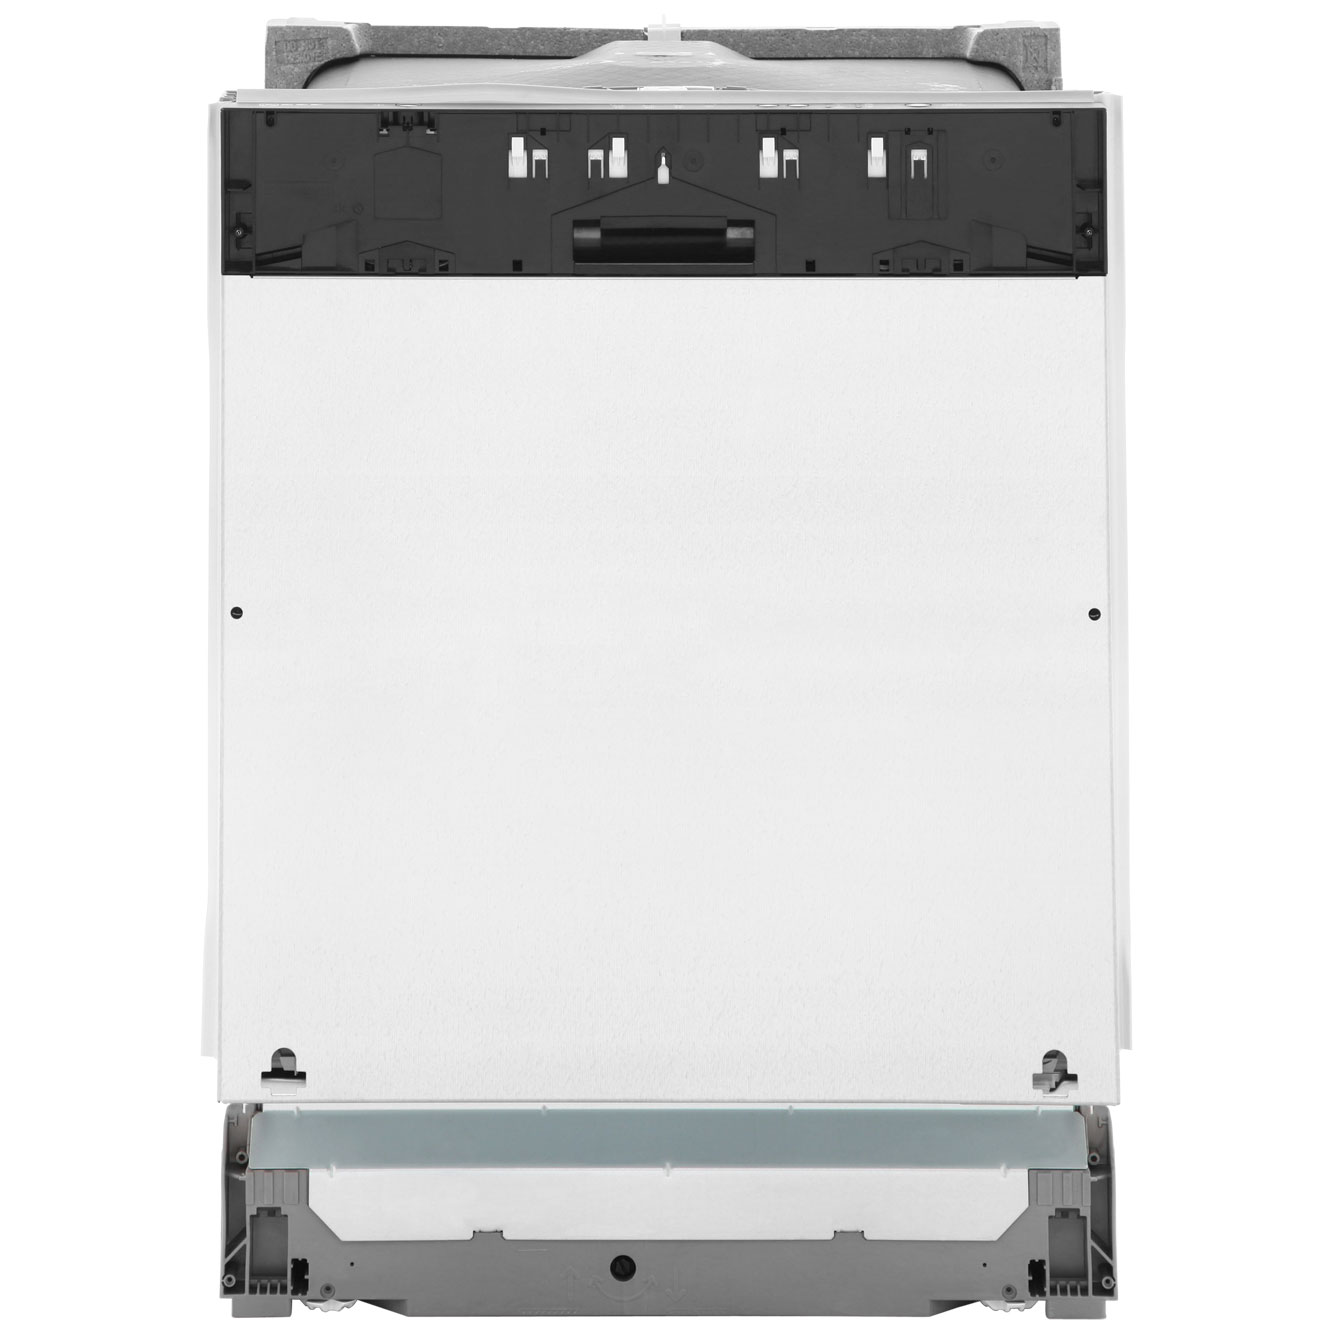 Neff S51E40X1GB Fully Integrated Standard Dishwasher - Black